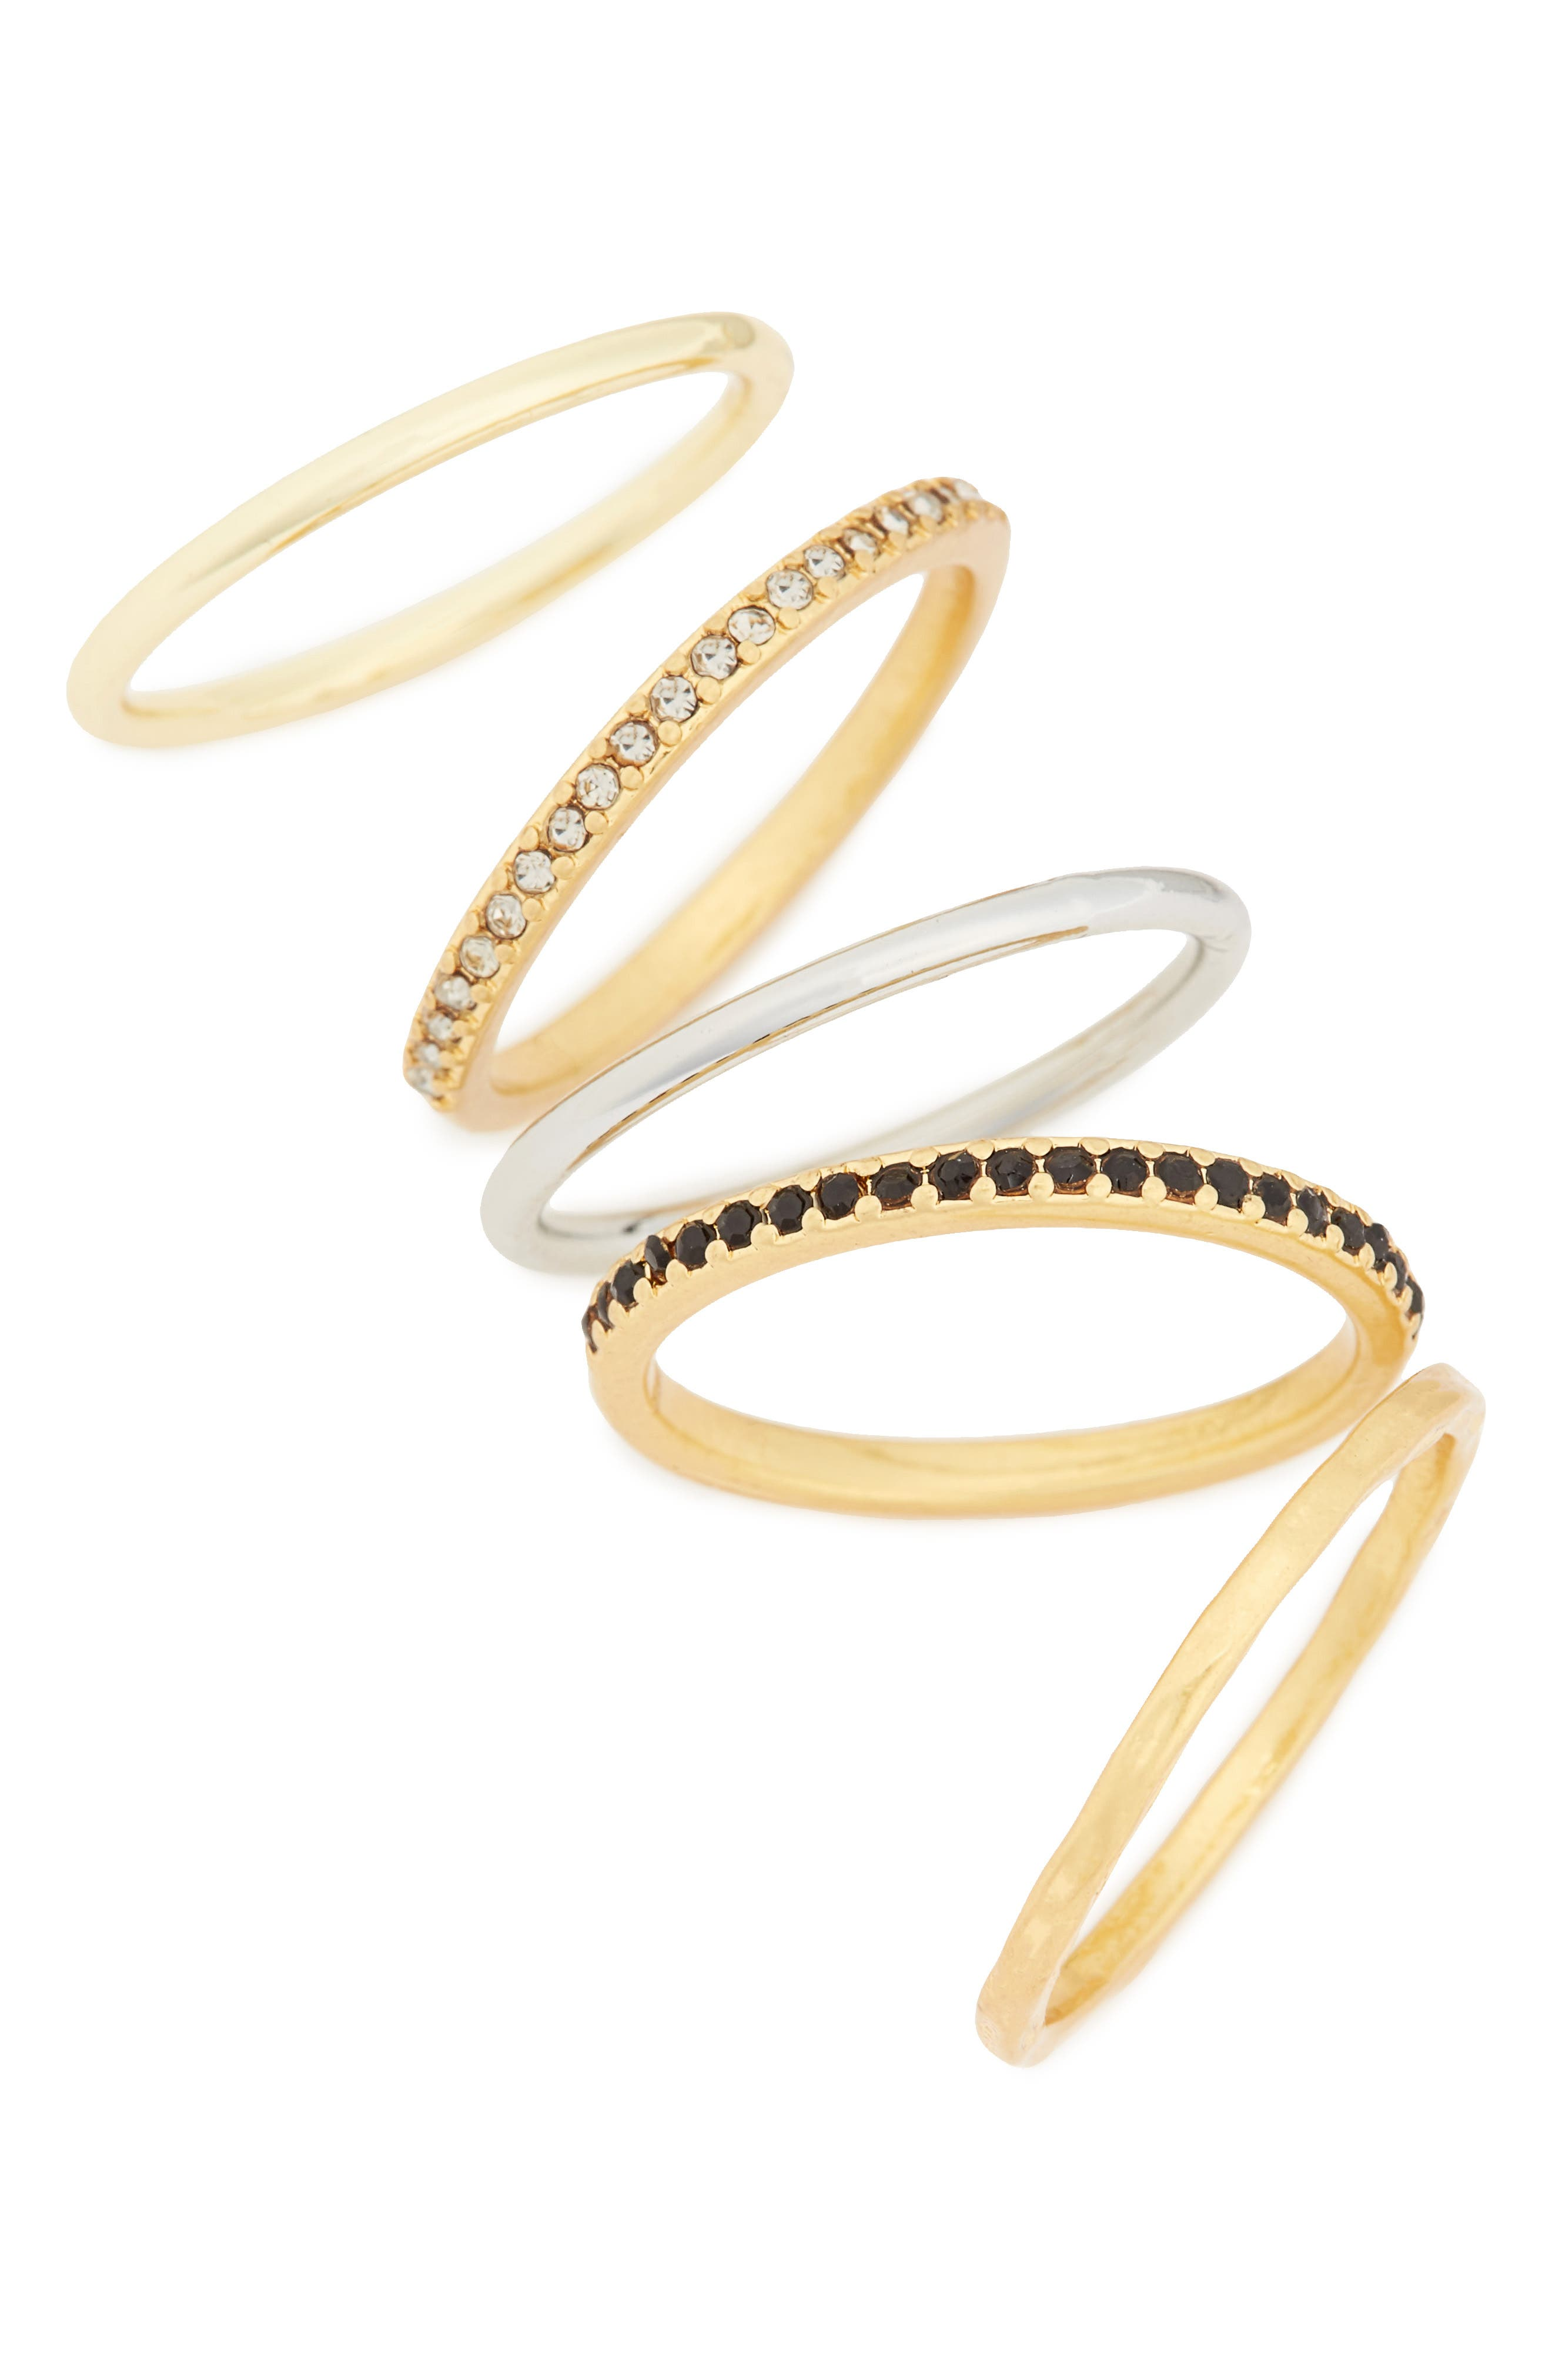 Main Image - Madewell Set of 5 Filament Stacking Rings